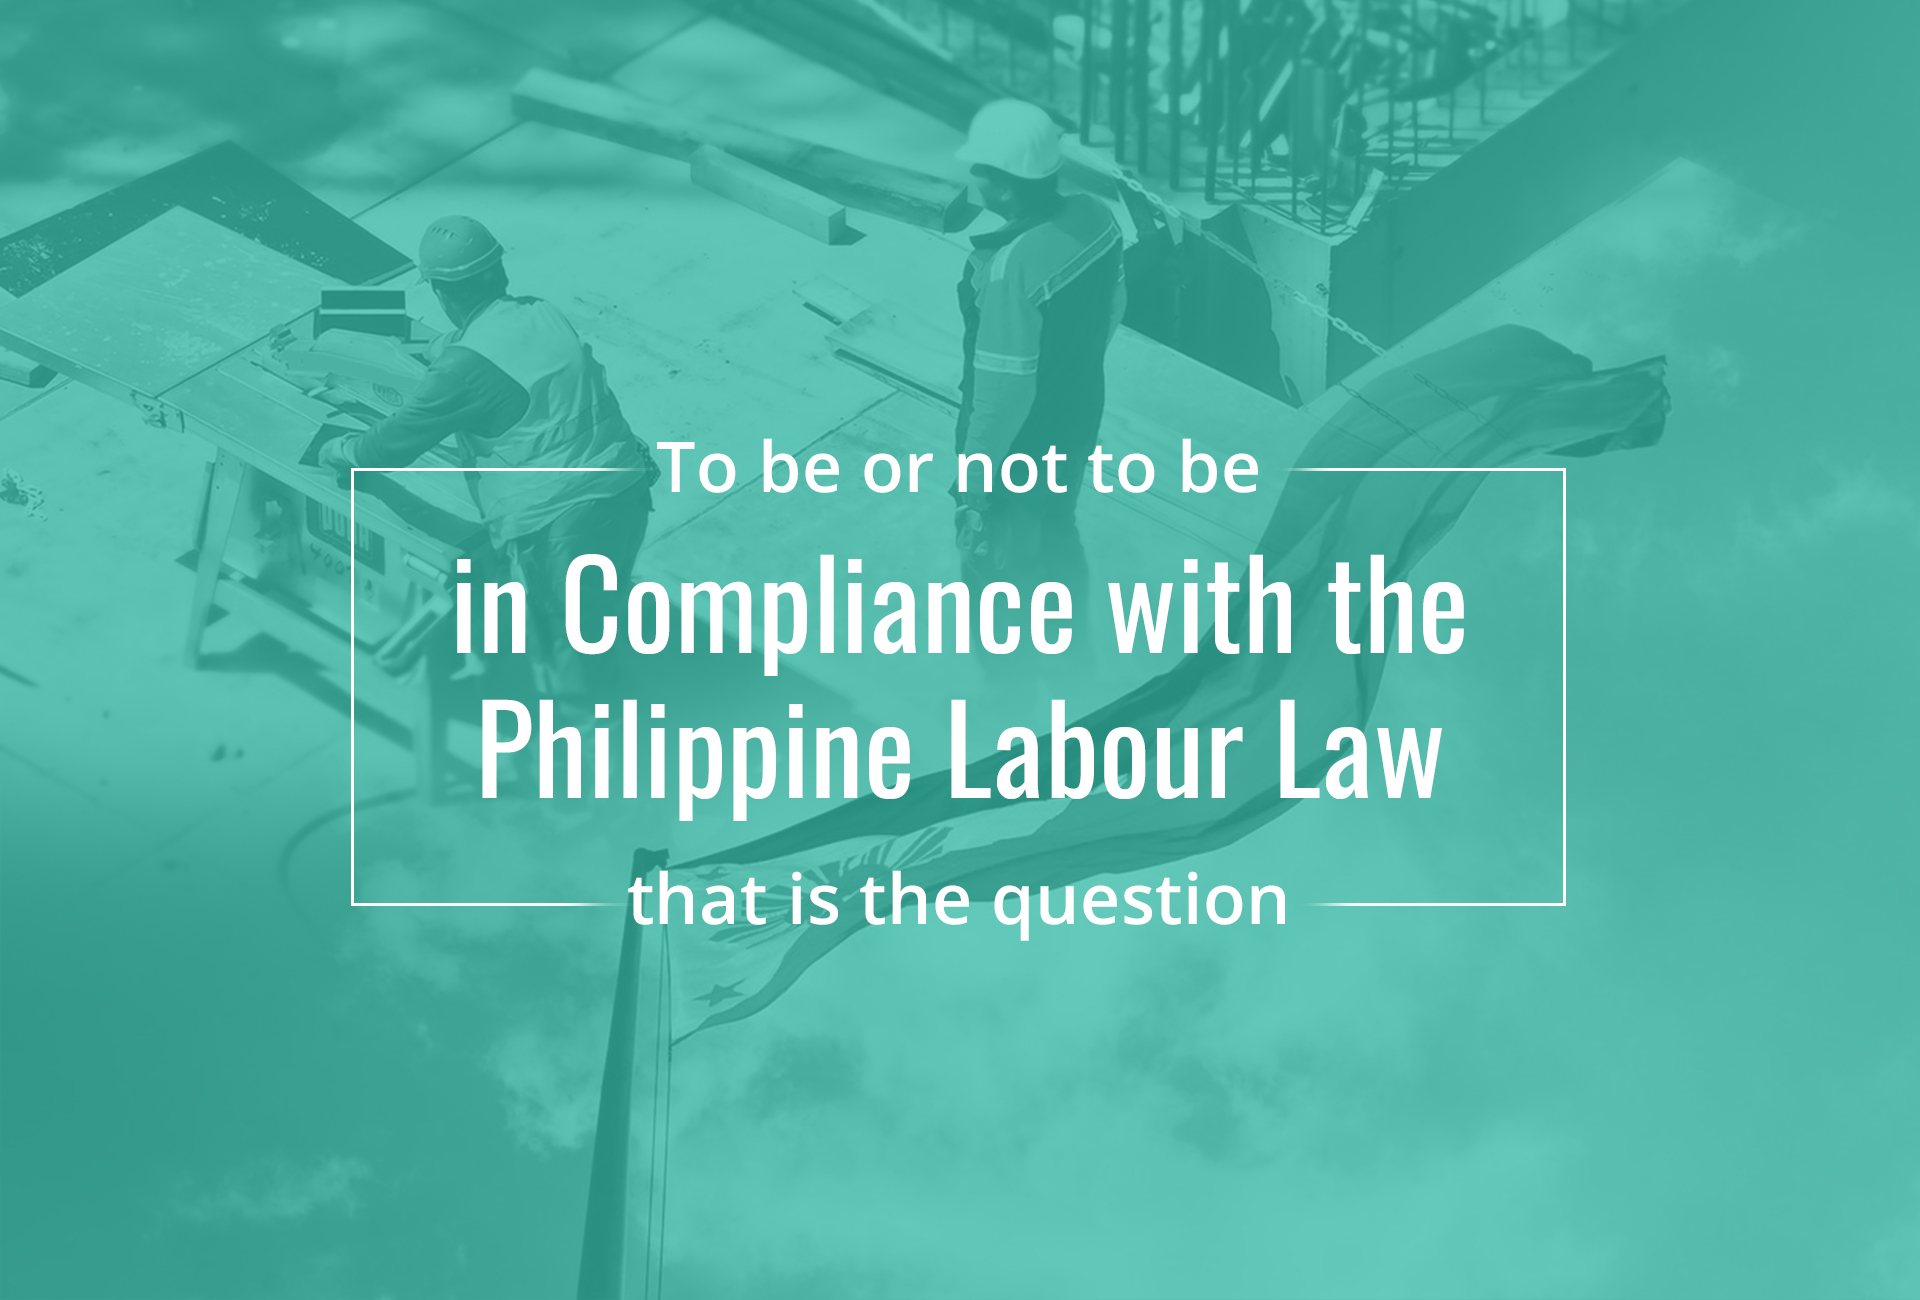 To be or not to be in Compliance with the Philippine Labour Laws, that is the question